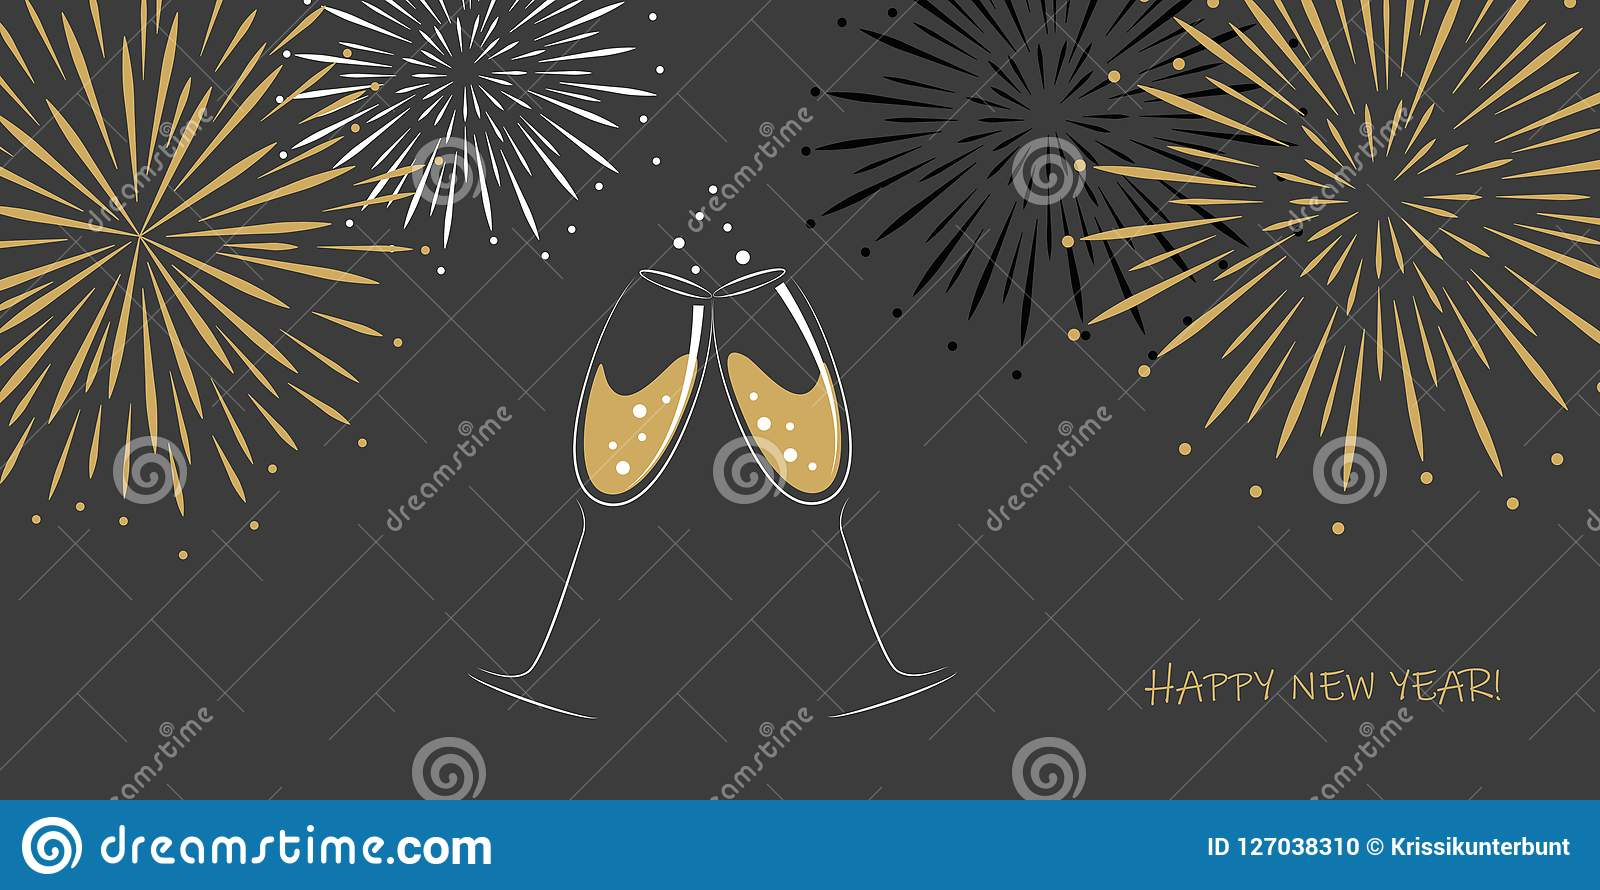 Happy new year greeting card two champagne glasses and fireworks on a grey background